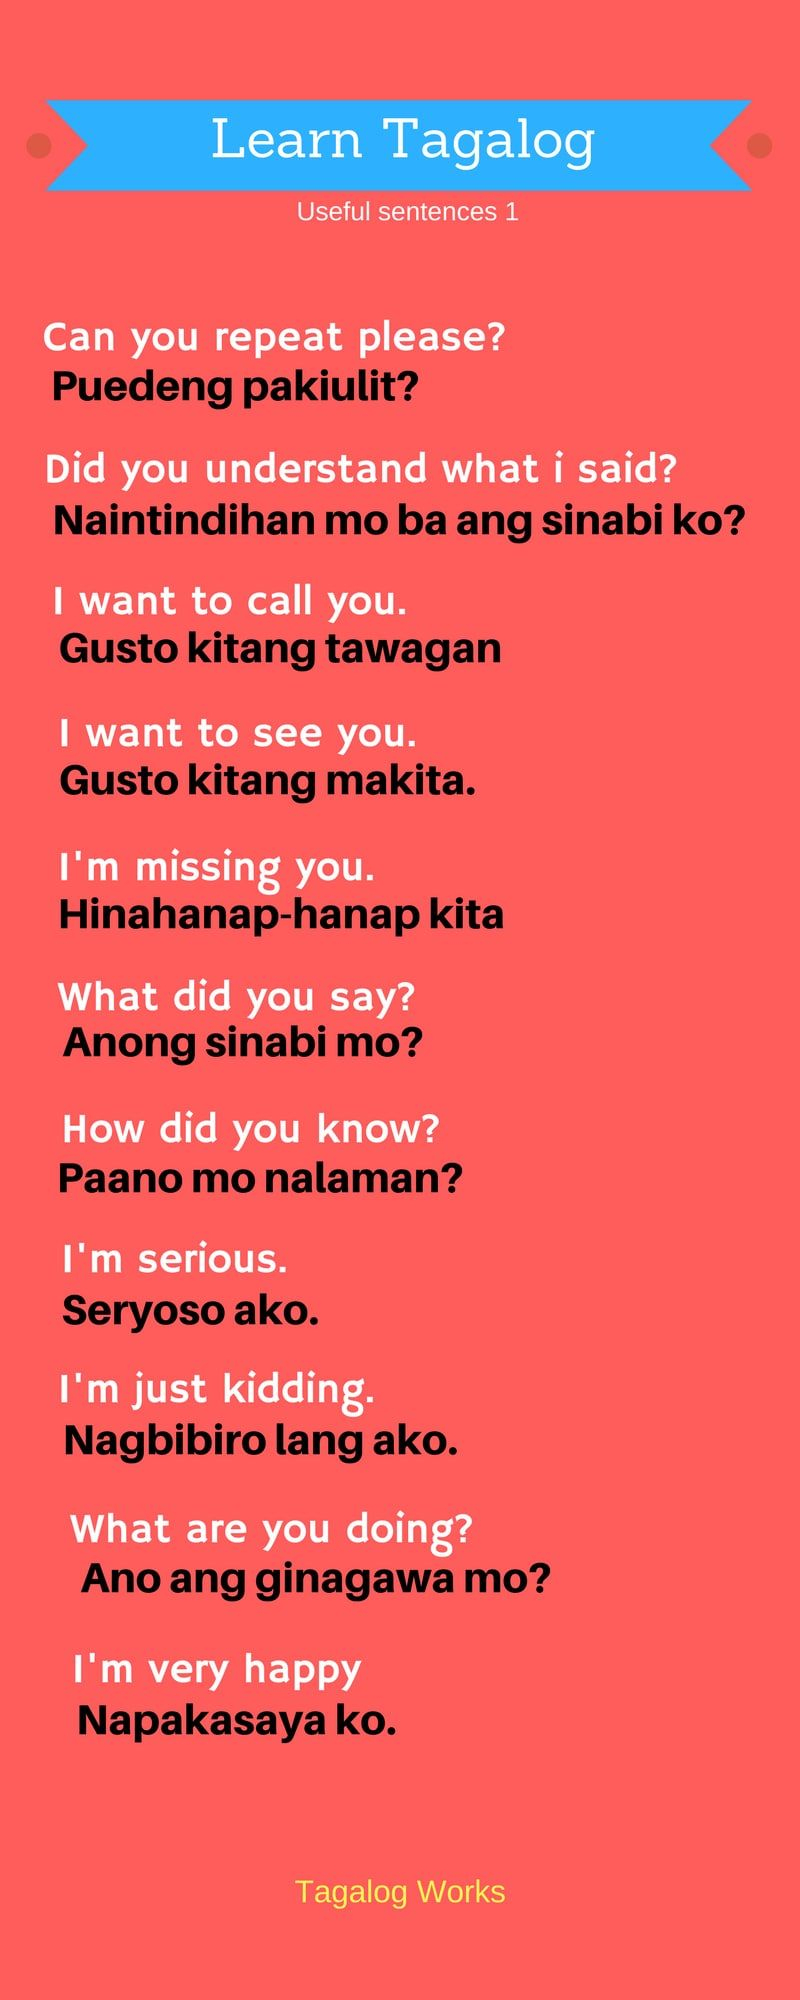 Pinmercedes Williams On That Filipino Buhay | Tagalog Words - Printable Crossword Puzzle Tagalog